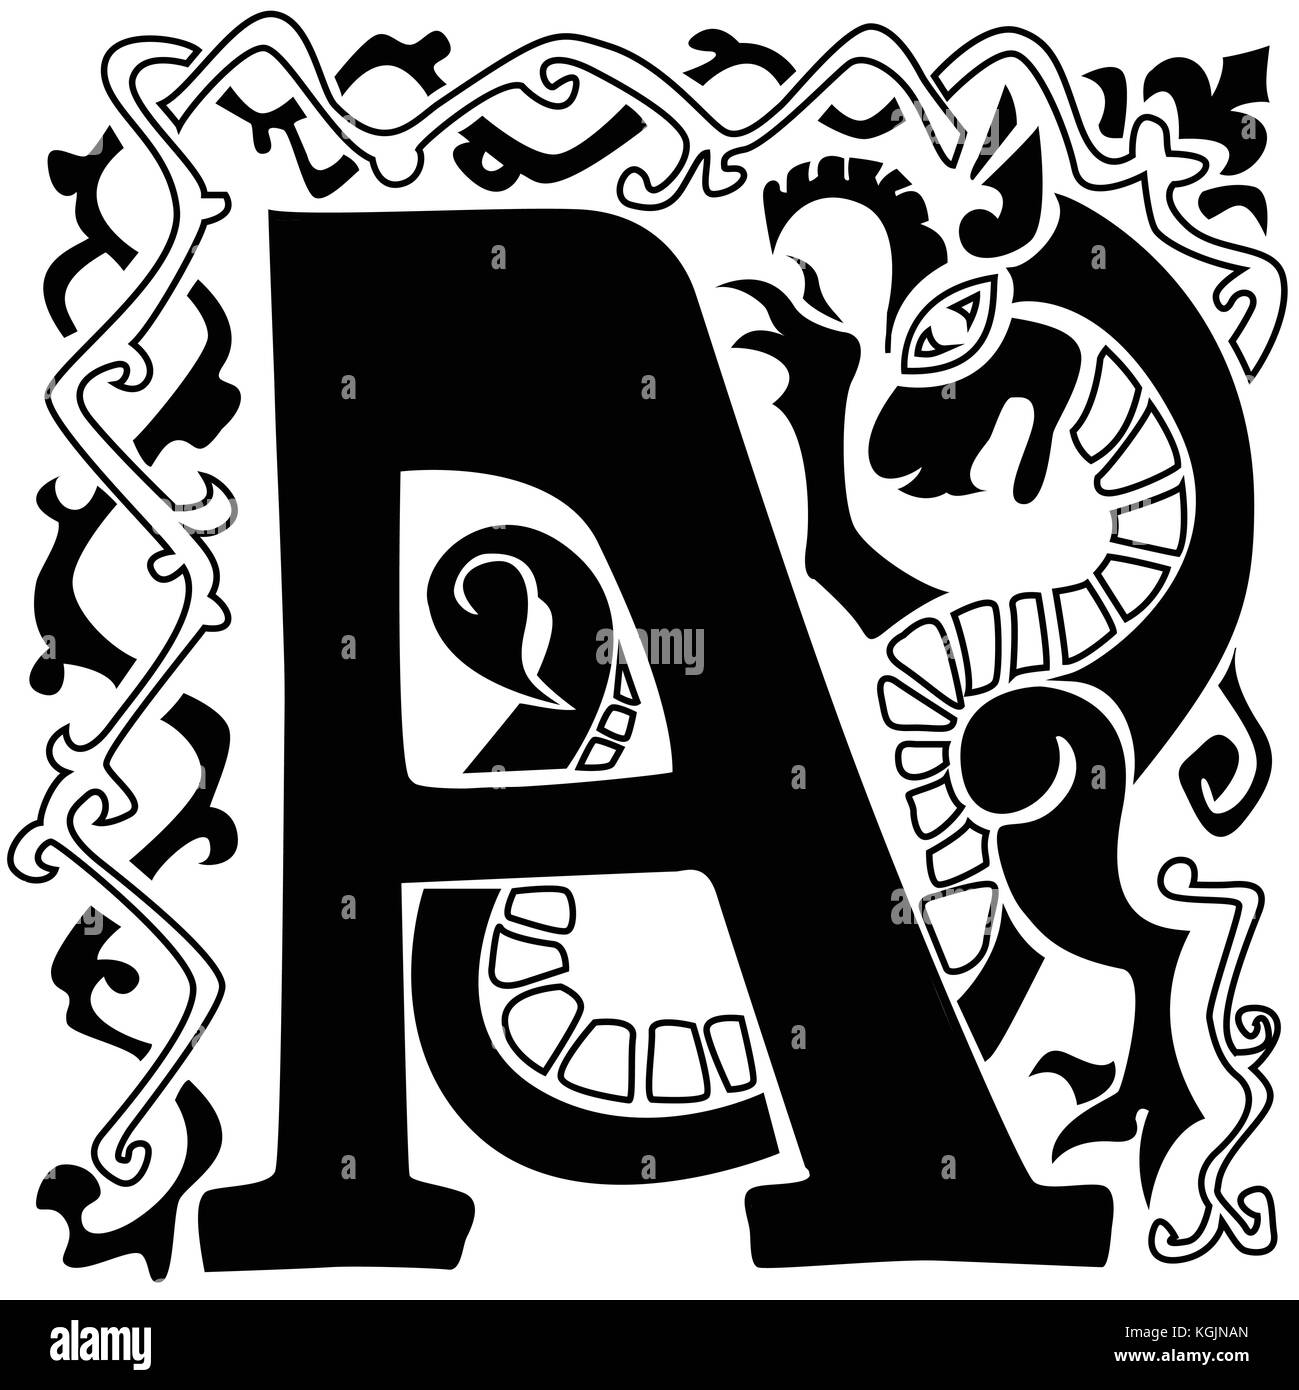 hight resolution of gargoyle capital letter a stock image